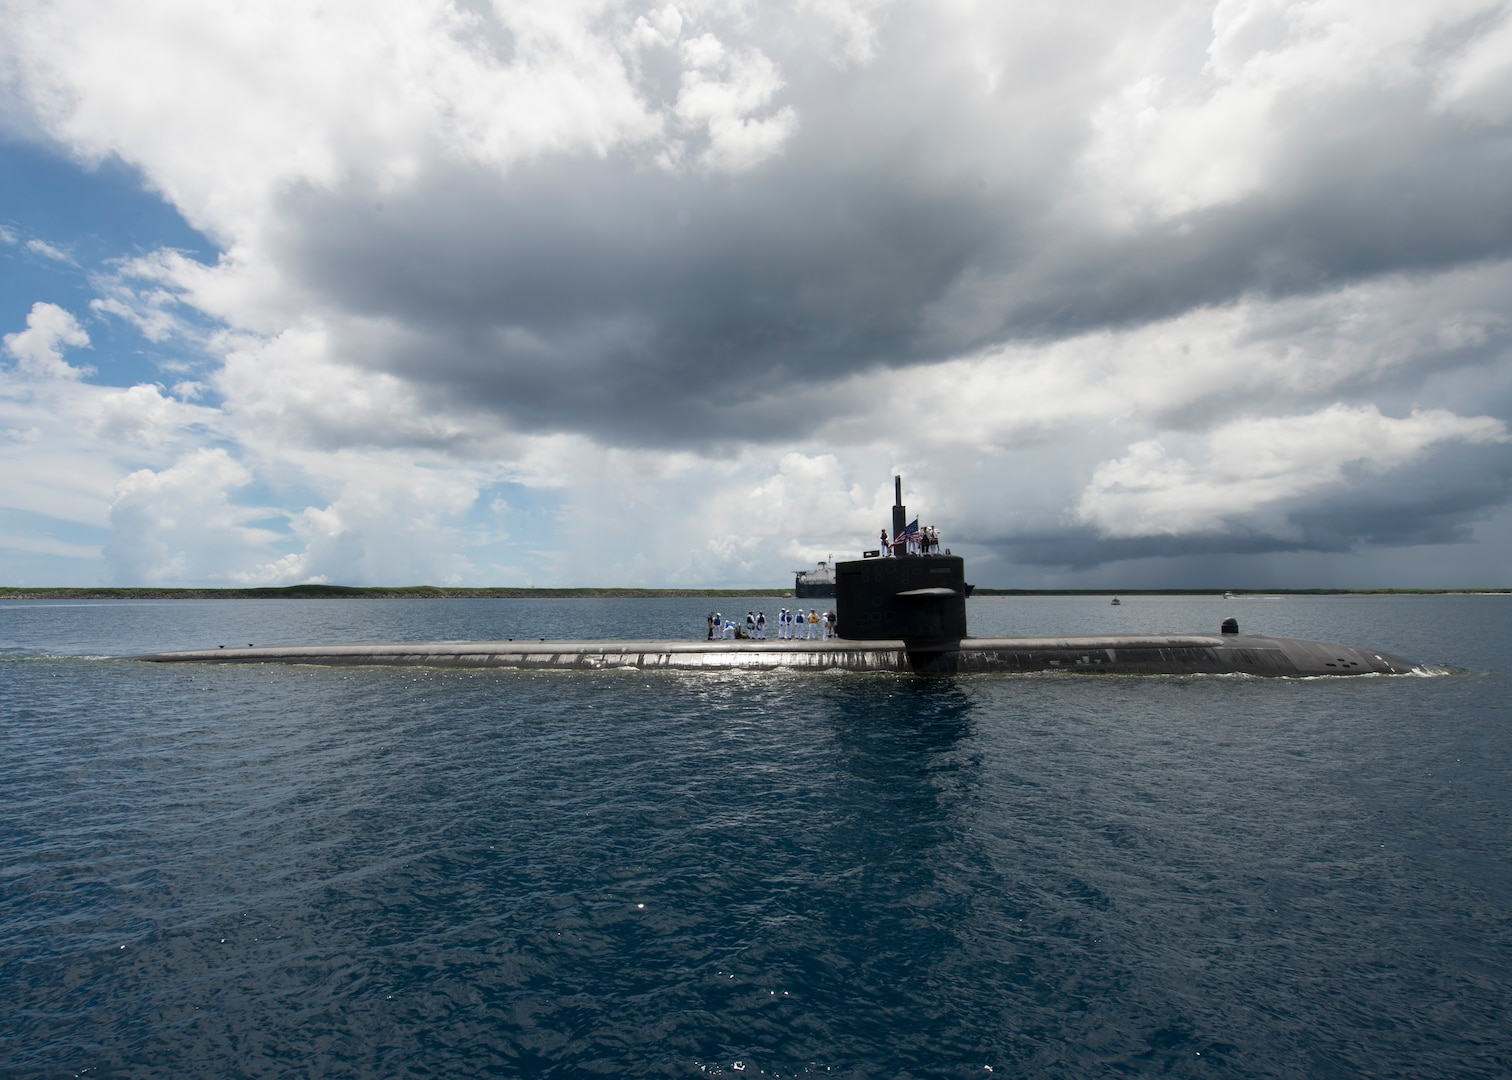 The Los Angeles-class fast-attack submarine USS Oklahoma City (SSN 723) returns to its homeport of Apra Harbor, Guam. Oklahoma City is one of four forward-deployed submarines assigned to Submarine Squadron 15.